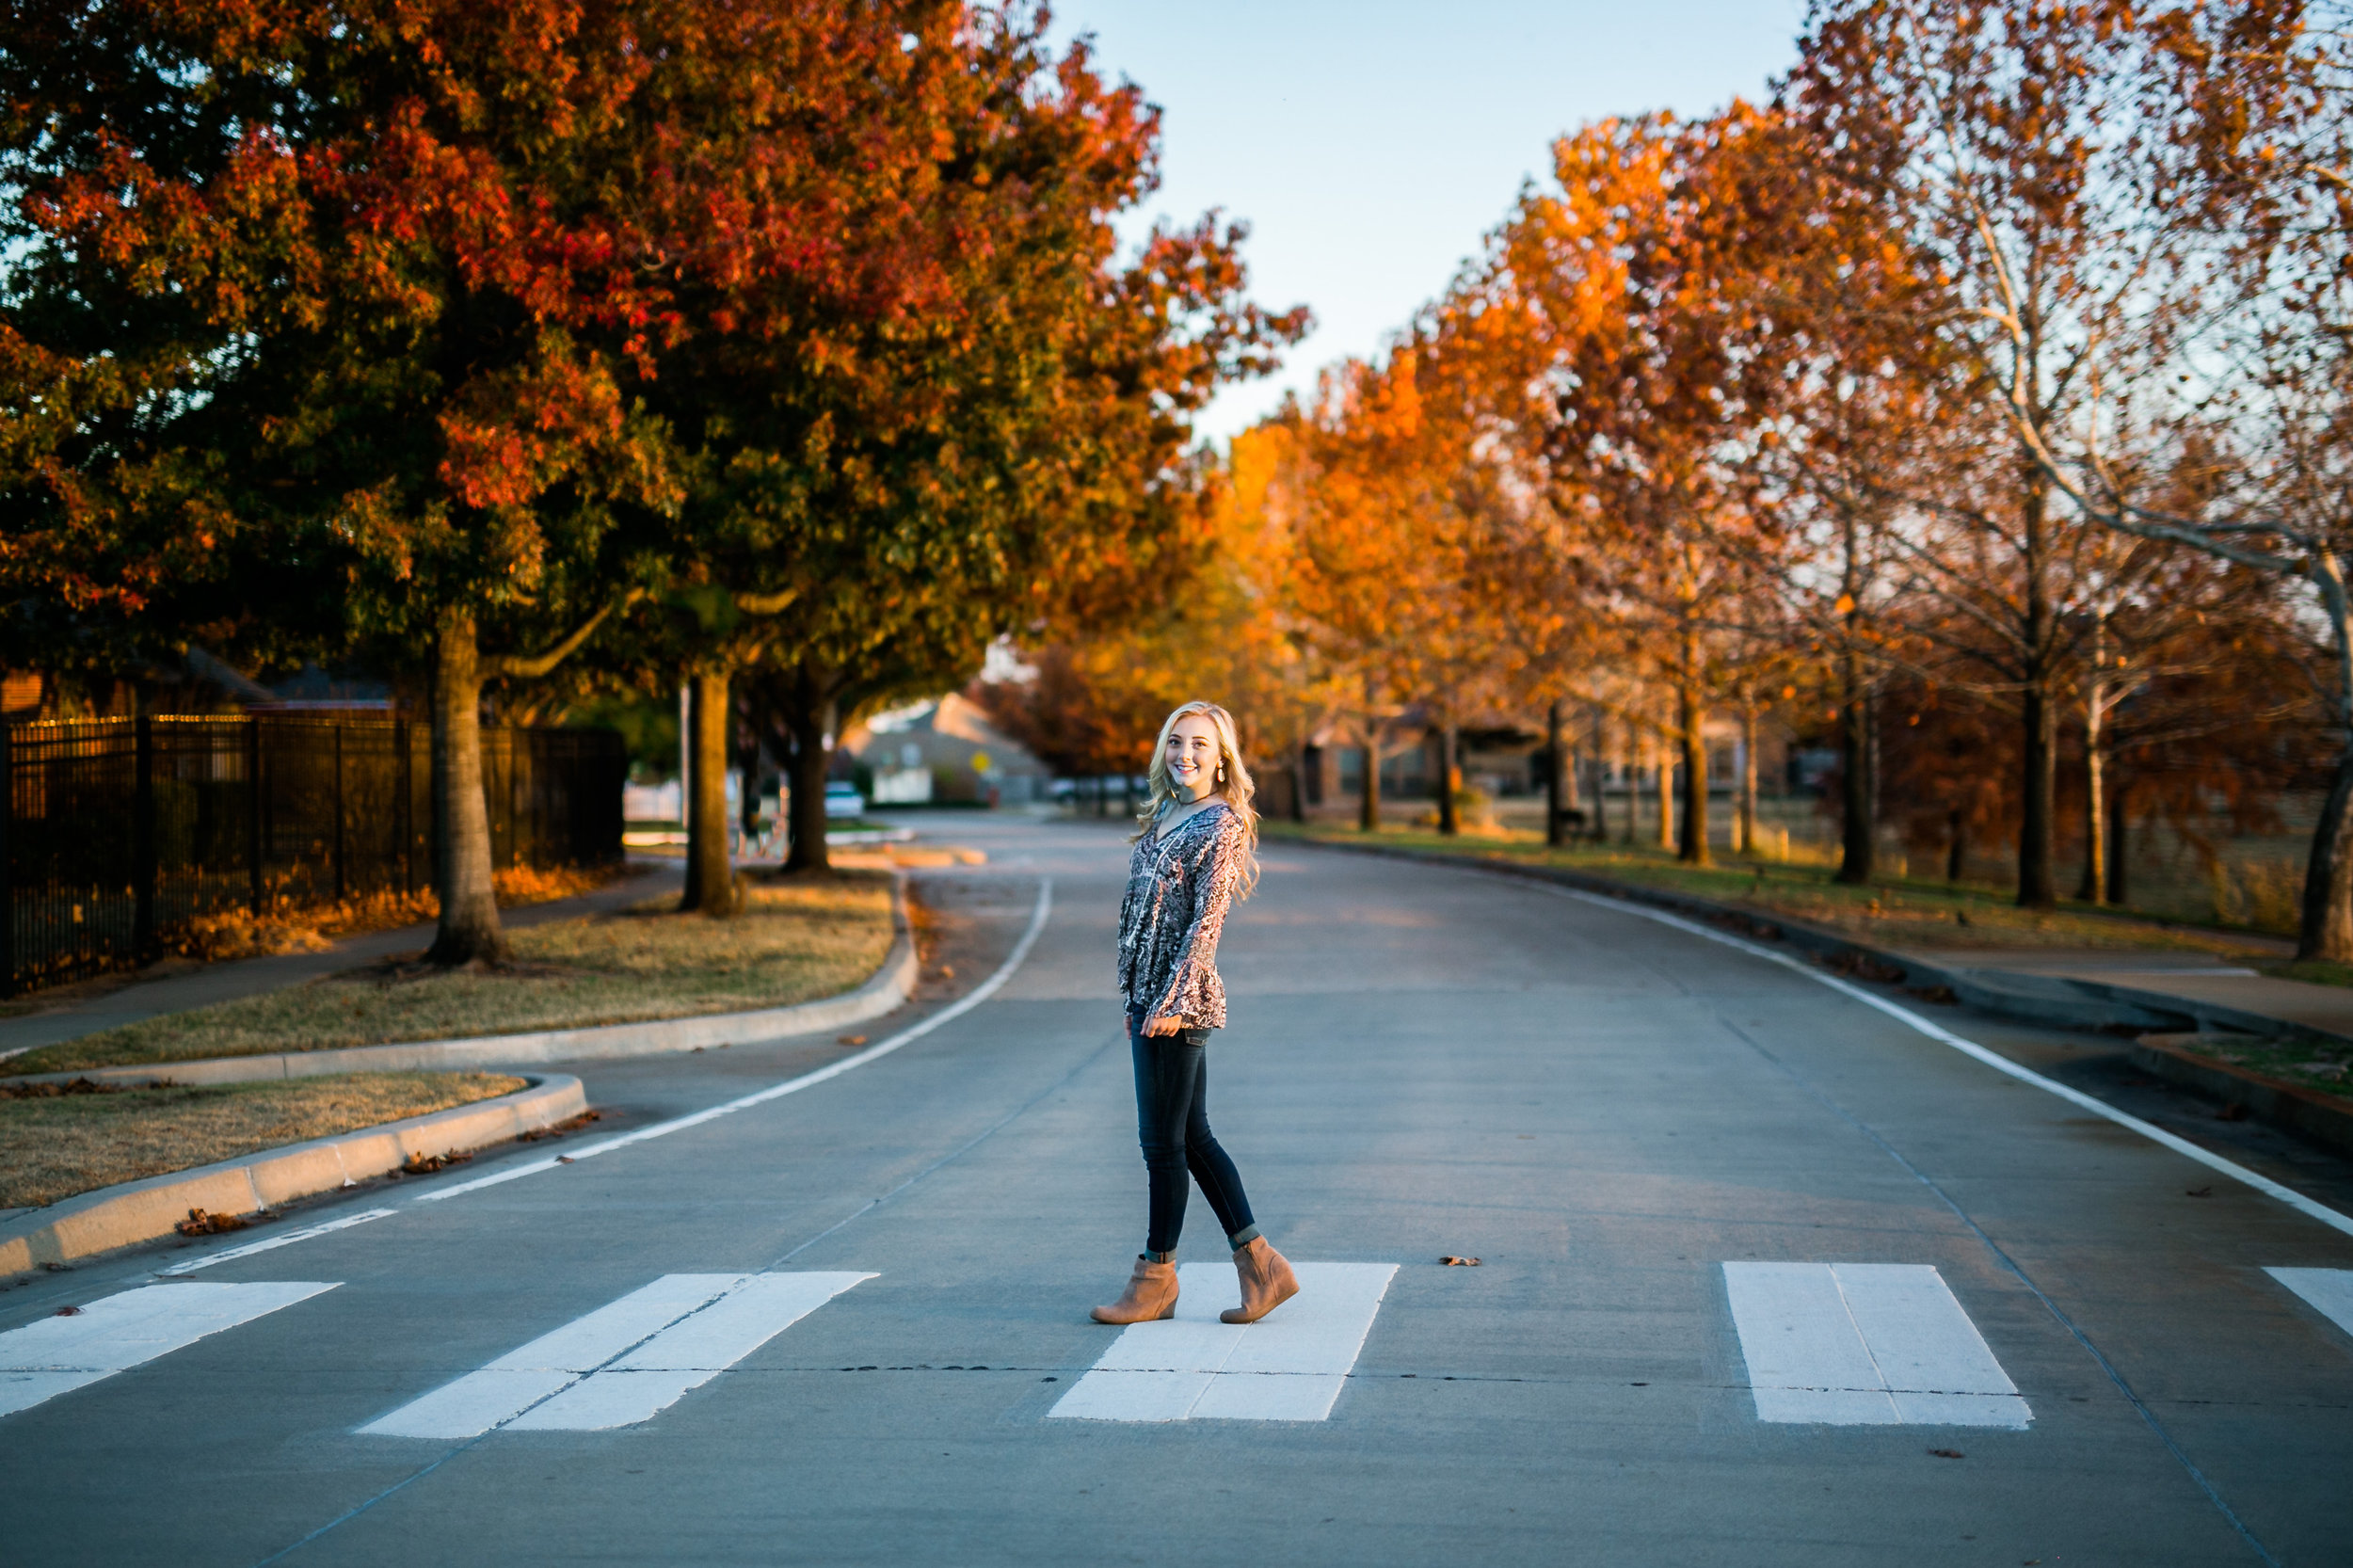 oklahoma senior photographer norman washington high school crosswalk fall foliage leaves